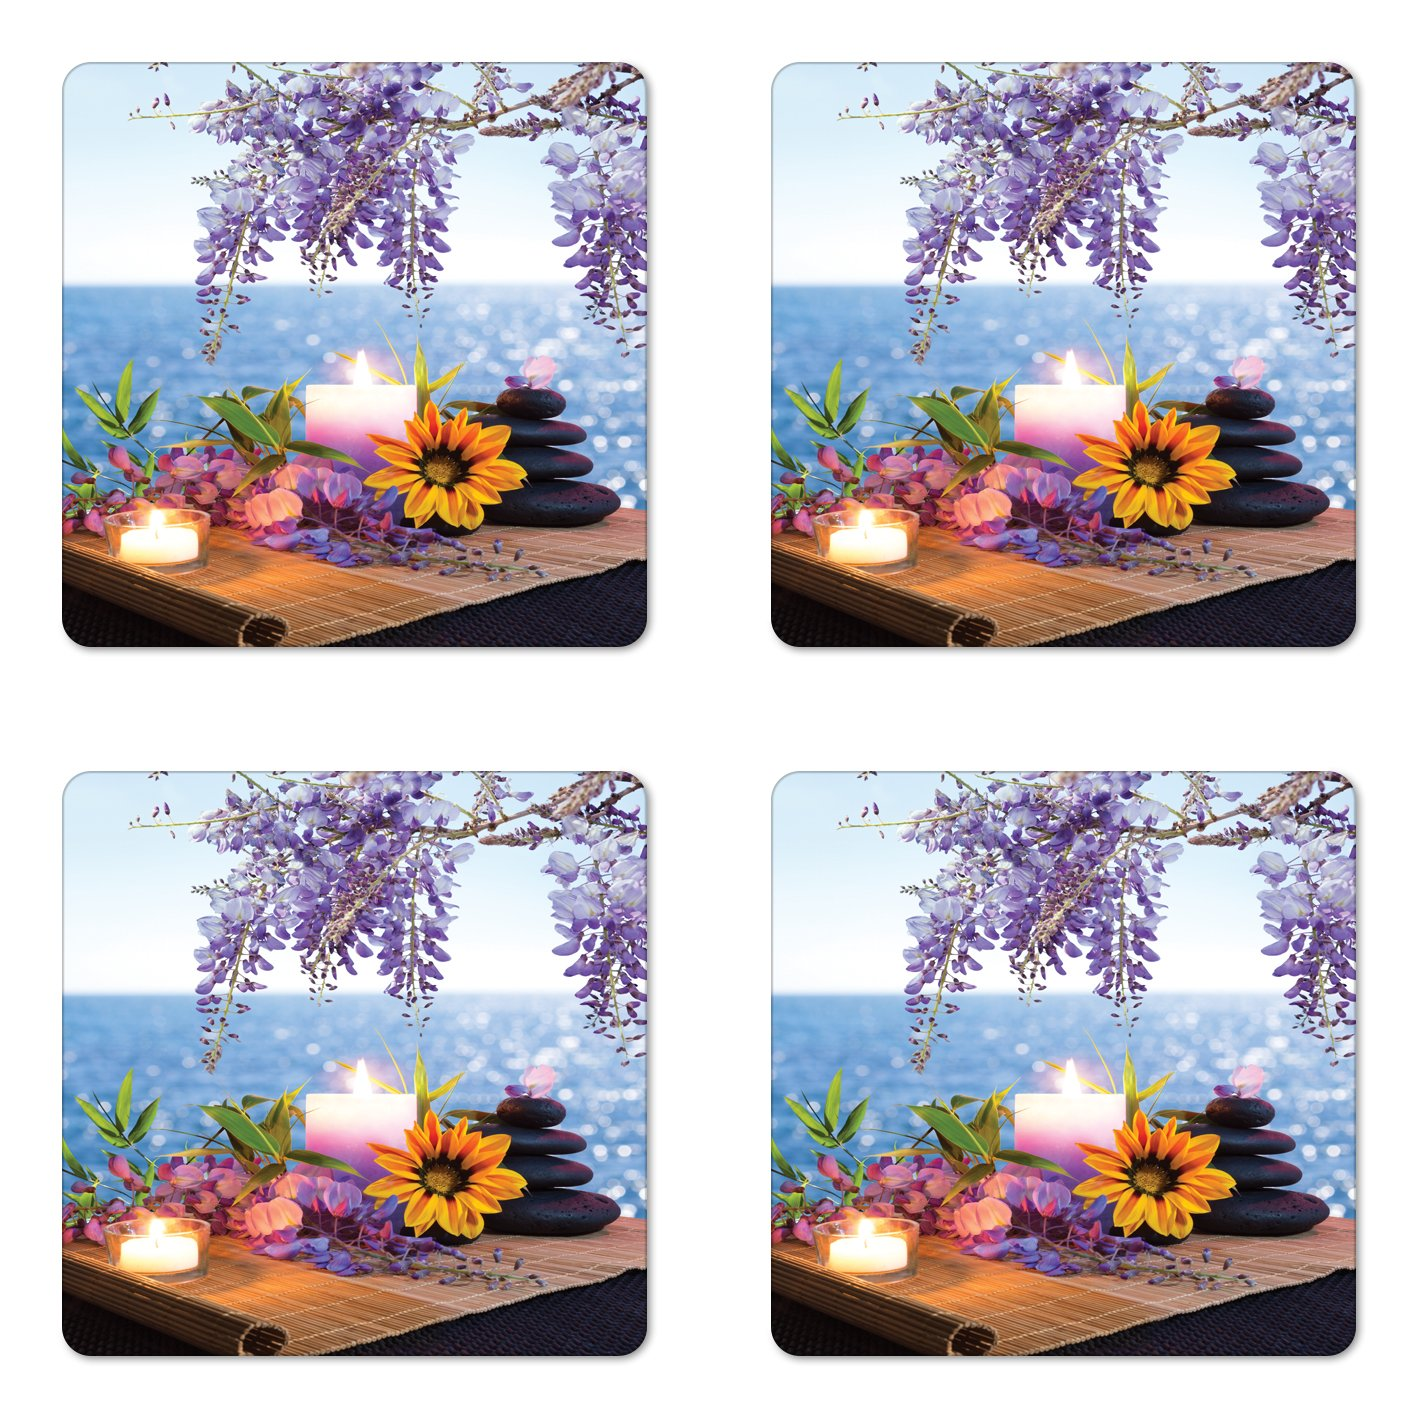 Lunarable Spa Coaster Set of Four, Massage Stones with Daisy and Wisteria with the Seabed Foliage Meditation, Square Hardboard Gloss Coasters for Drinks, Pale Blue Lavander Green